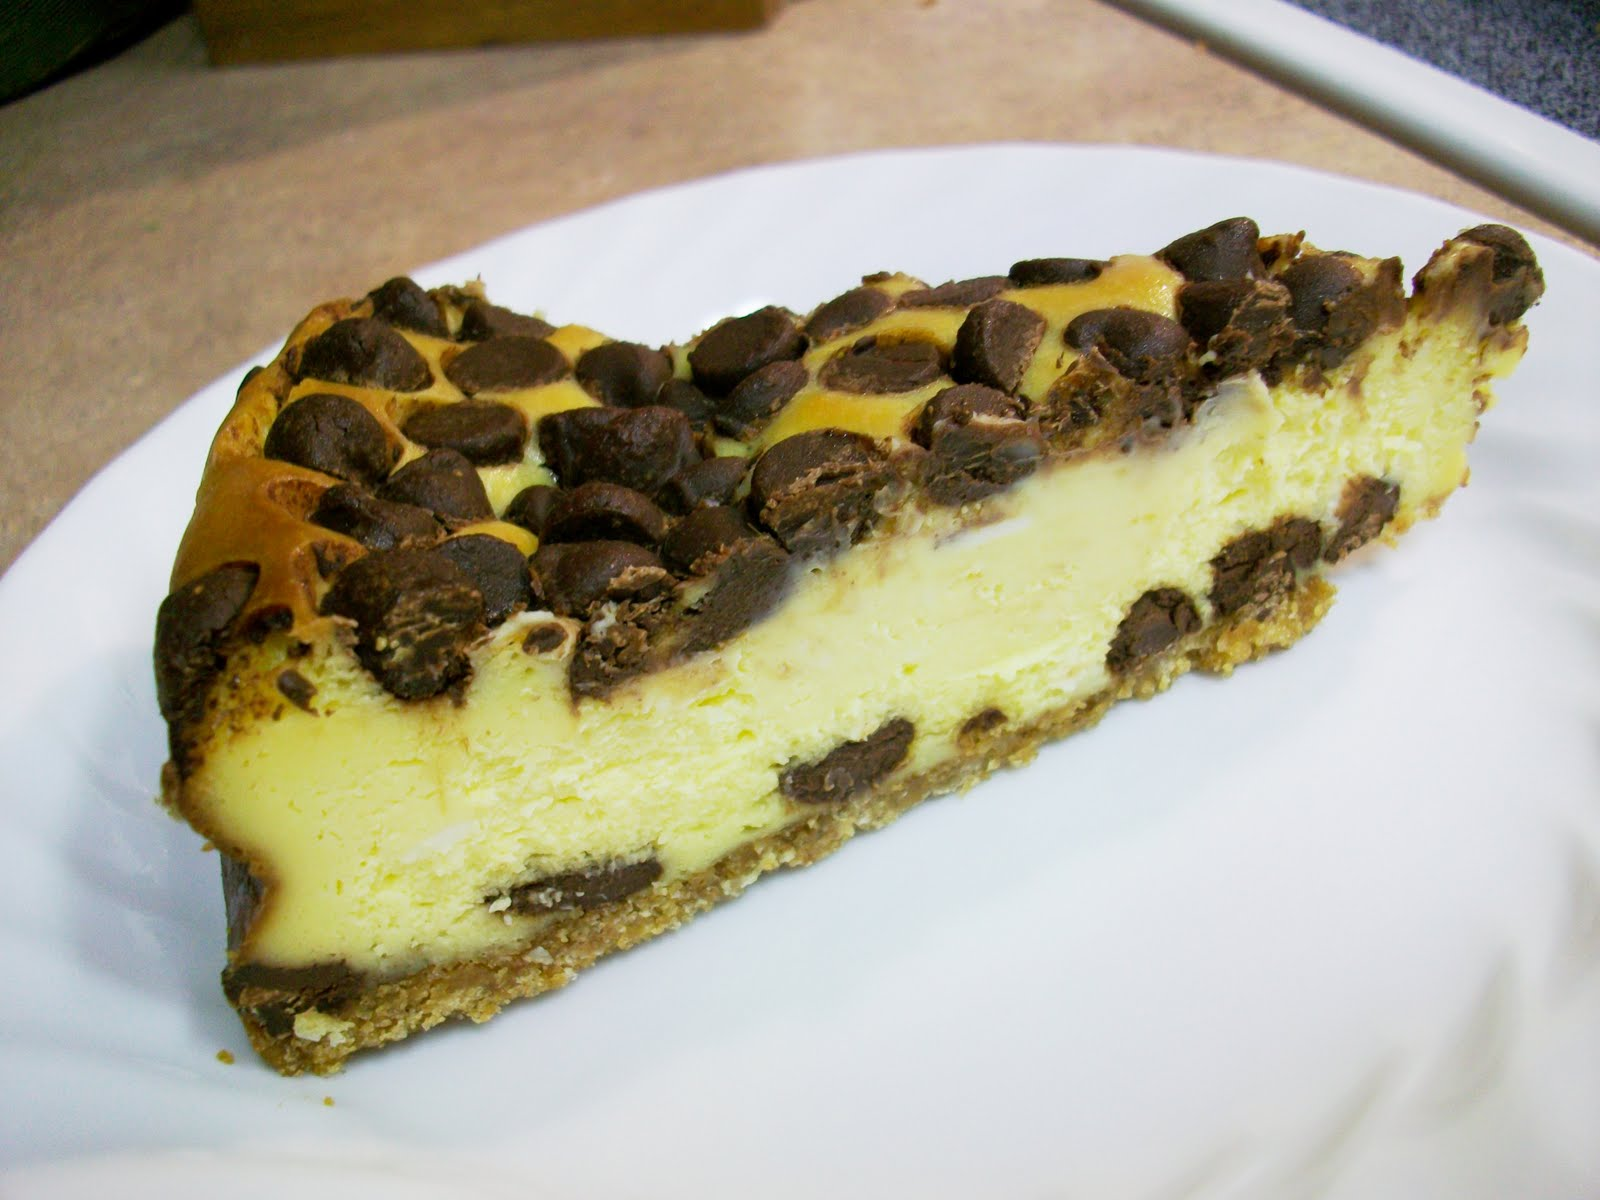 At Home With Haley: Chocolate Chip Cheesecake